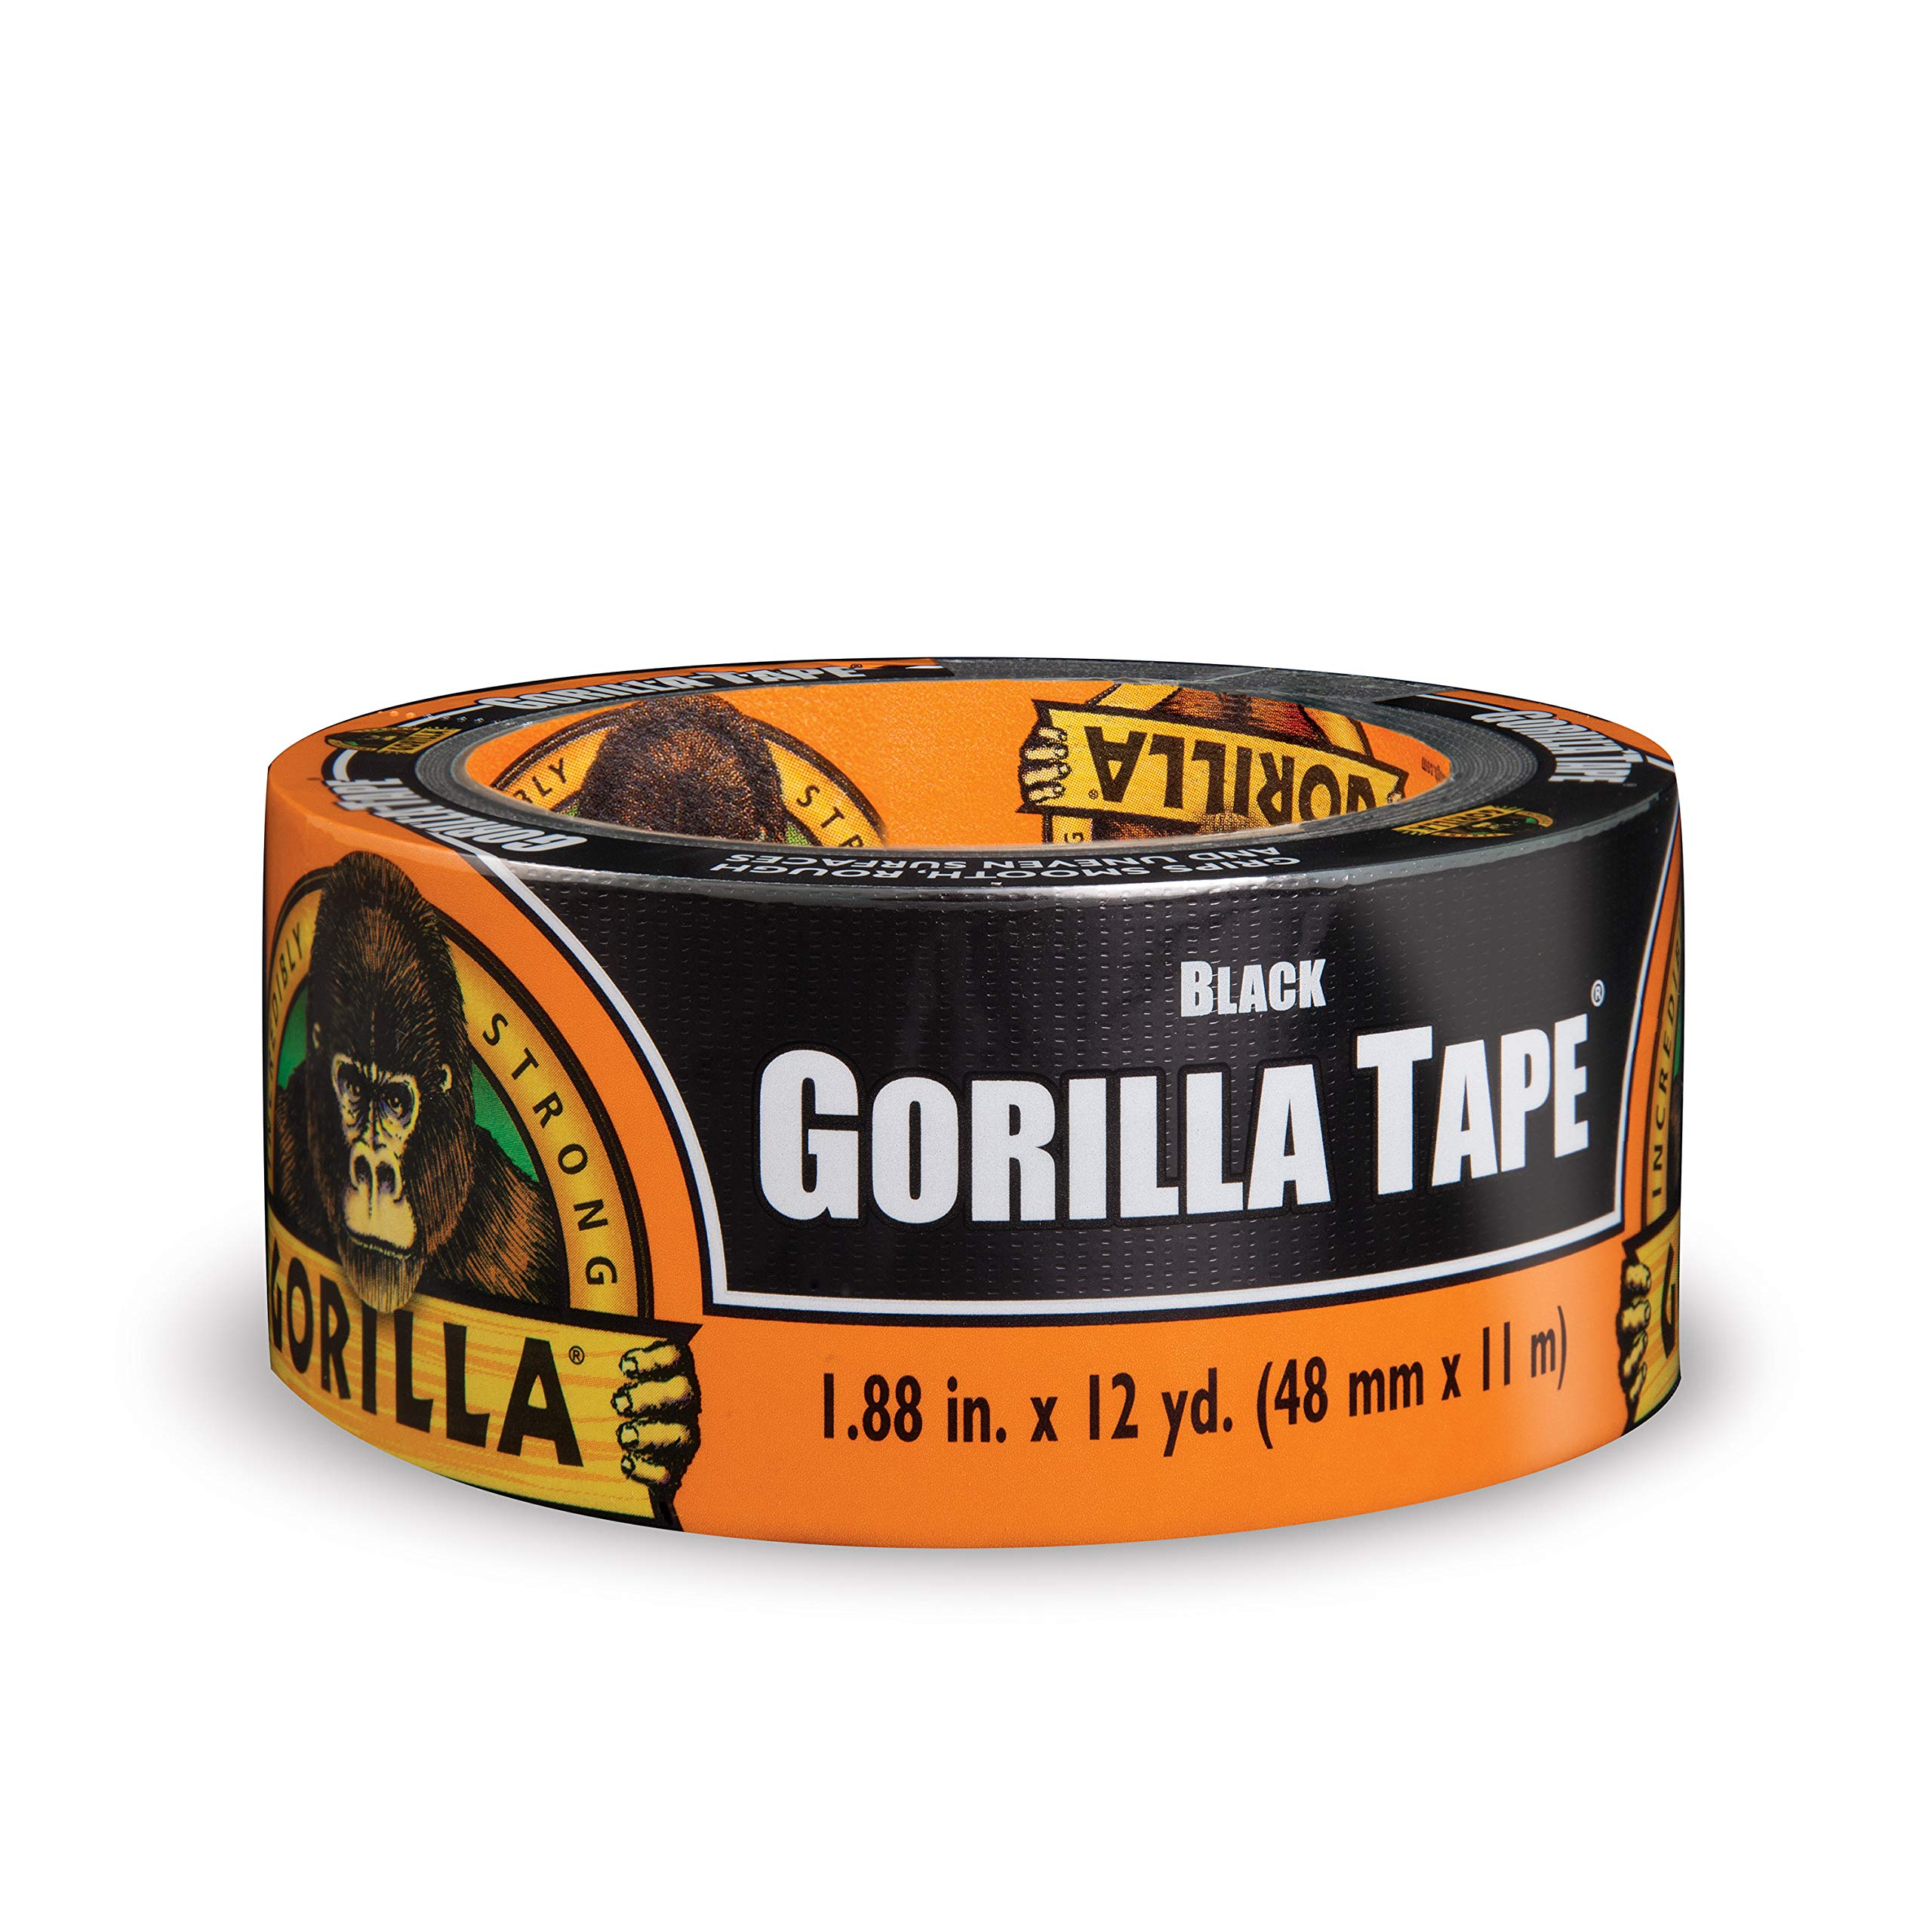 Gorilla 60122DF Duct Tape, 24 - Pack, Black by Gorilla